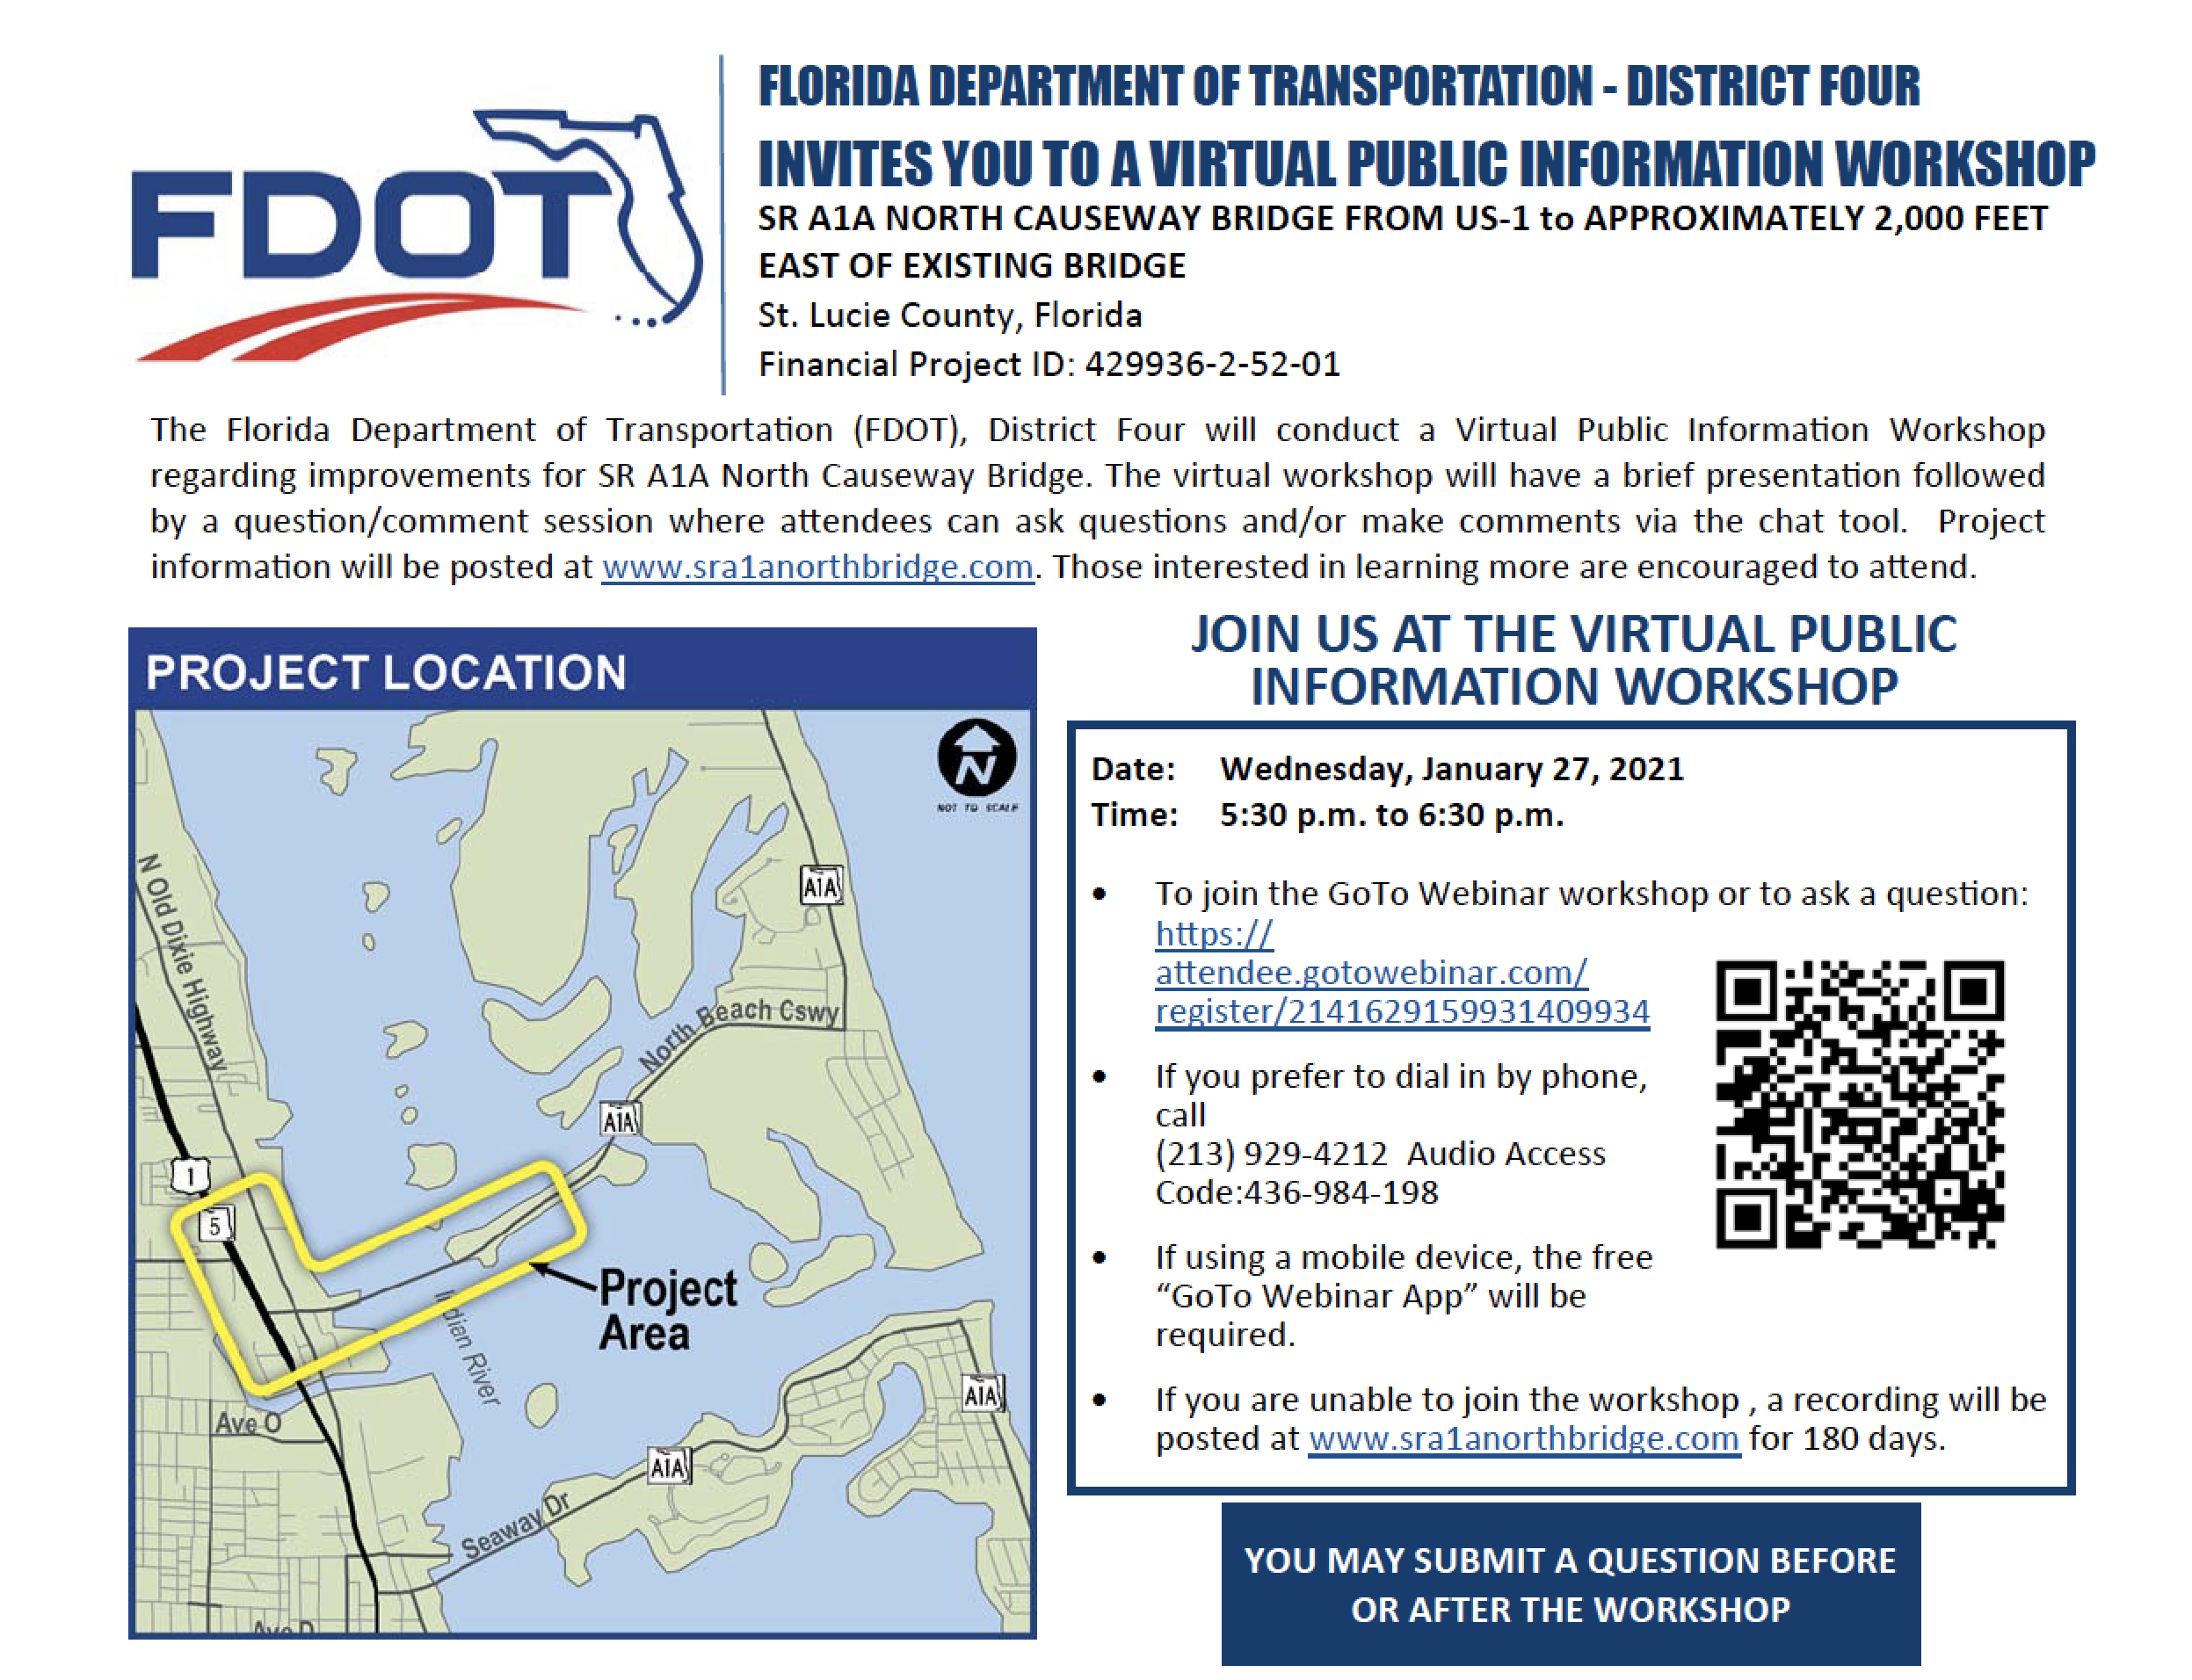 FDOT Virtual Workshop Jan 27, 2021